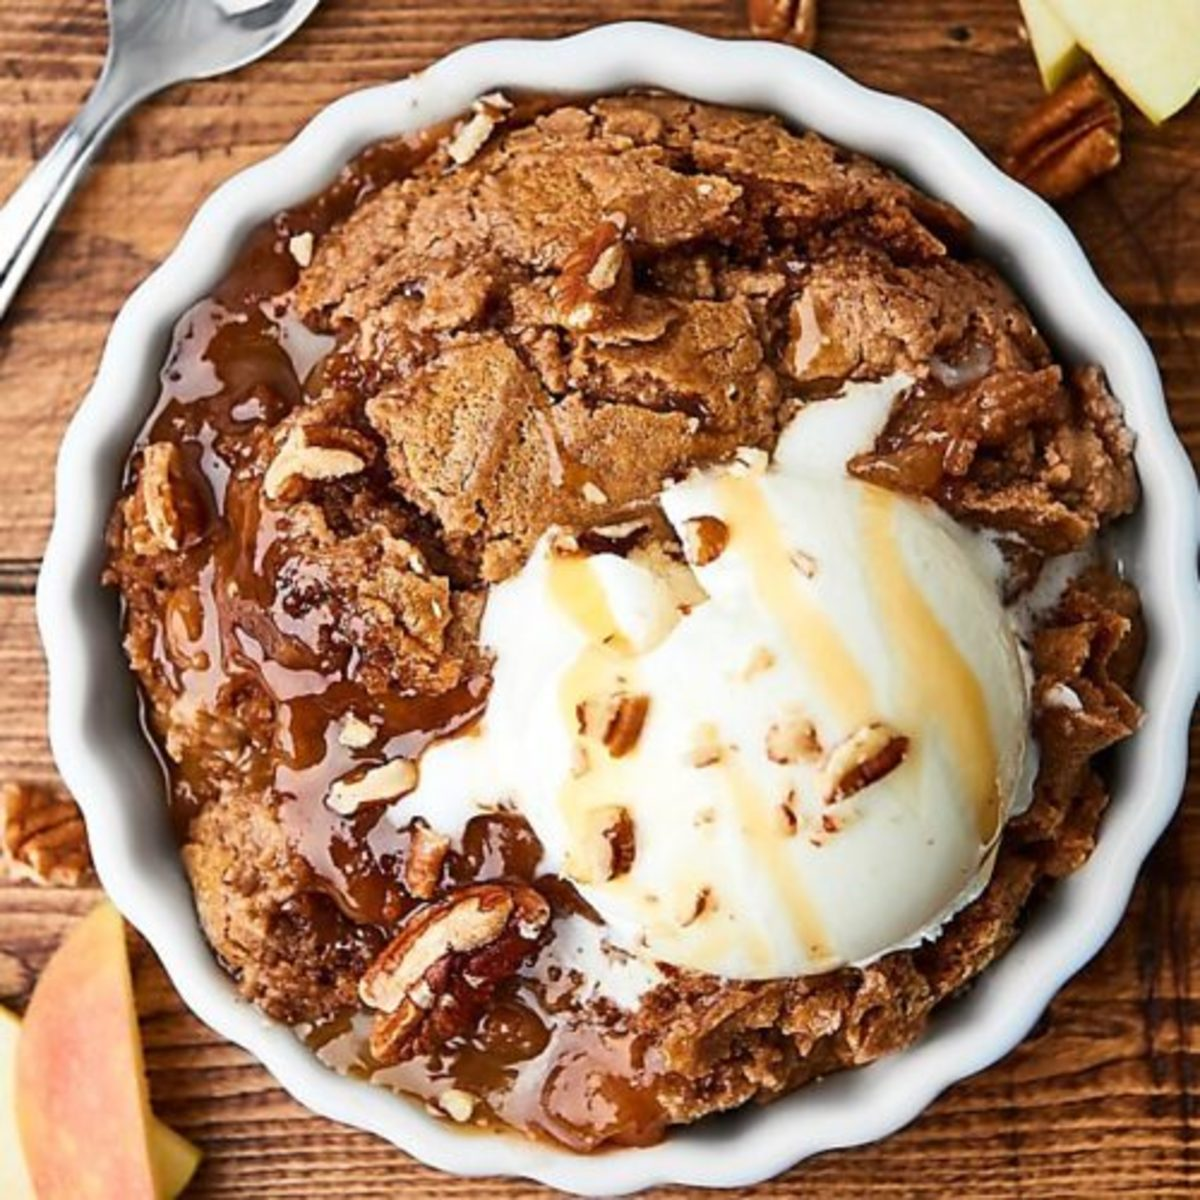 Slow-Cooker-Caramel-Apple-Dump-Cake-Show-Me-the-Yummy-Google-Thumb-Retina-1-500x500